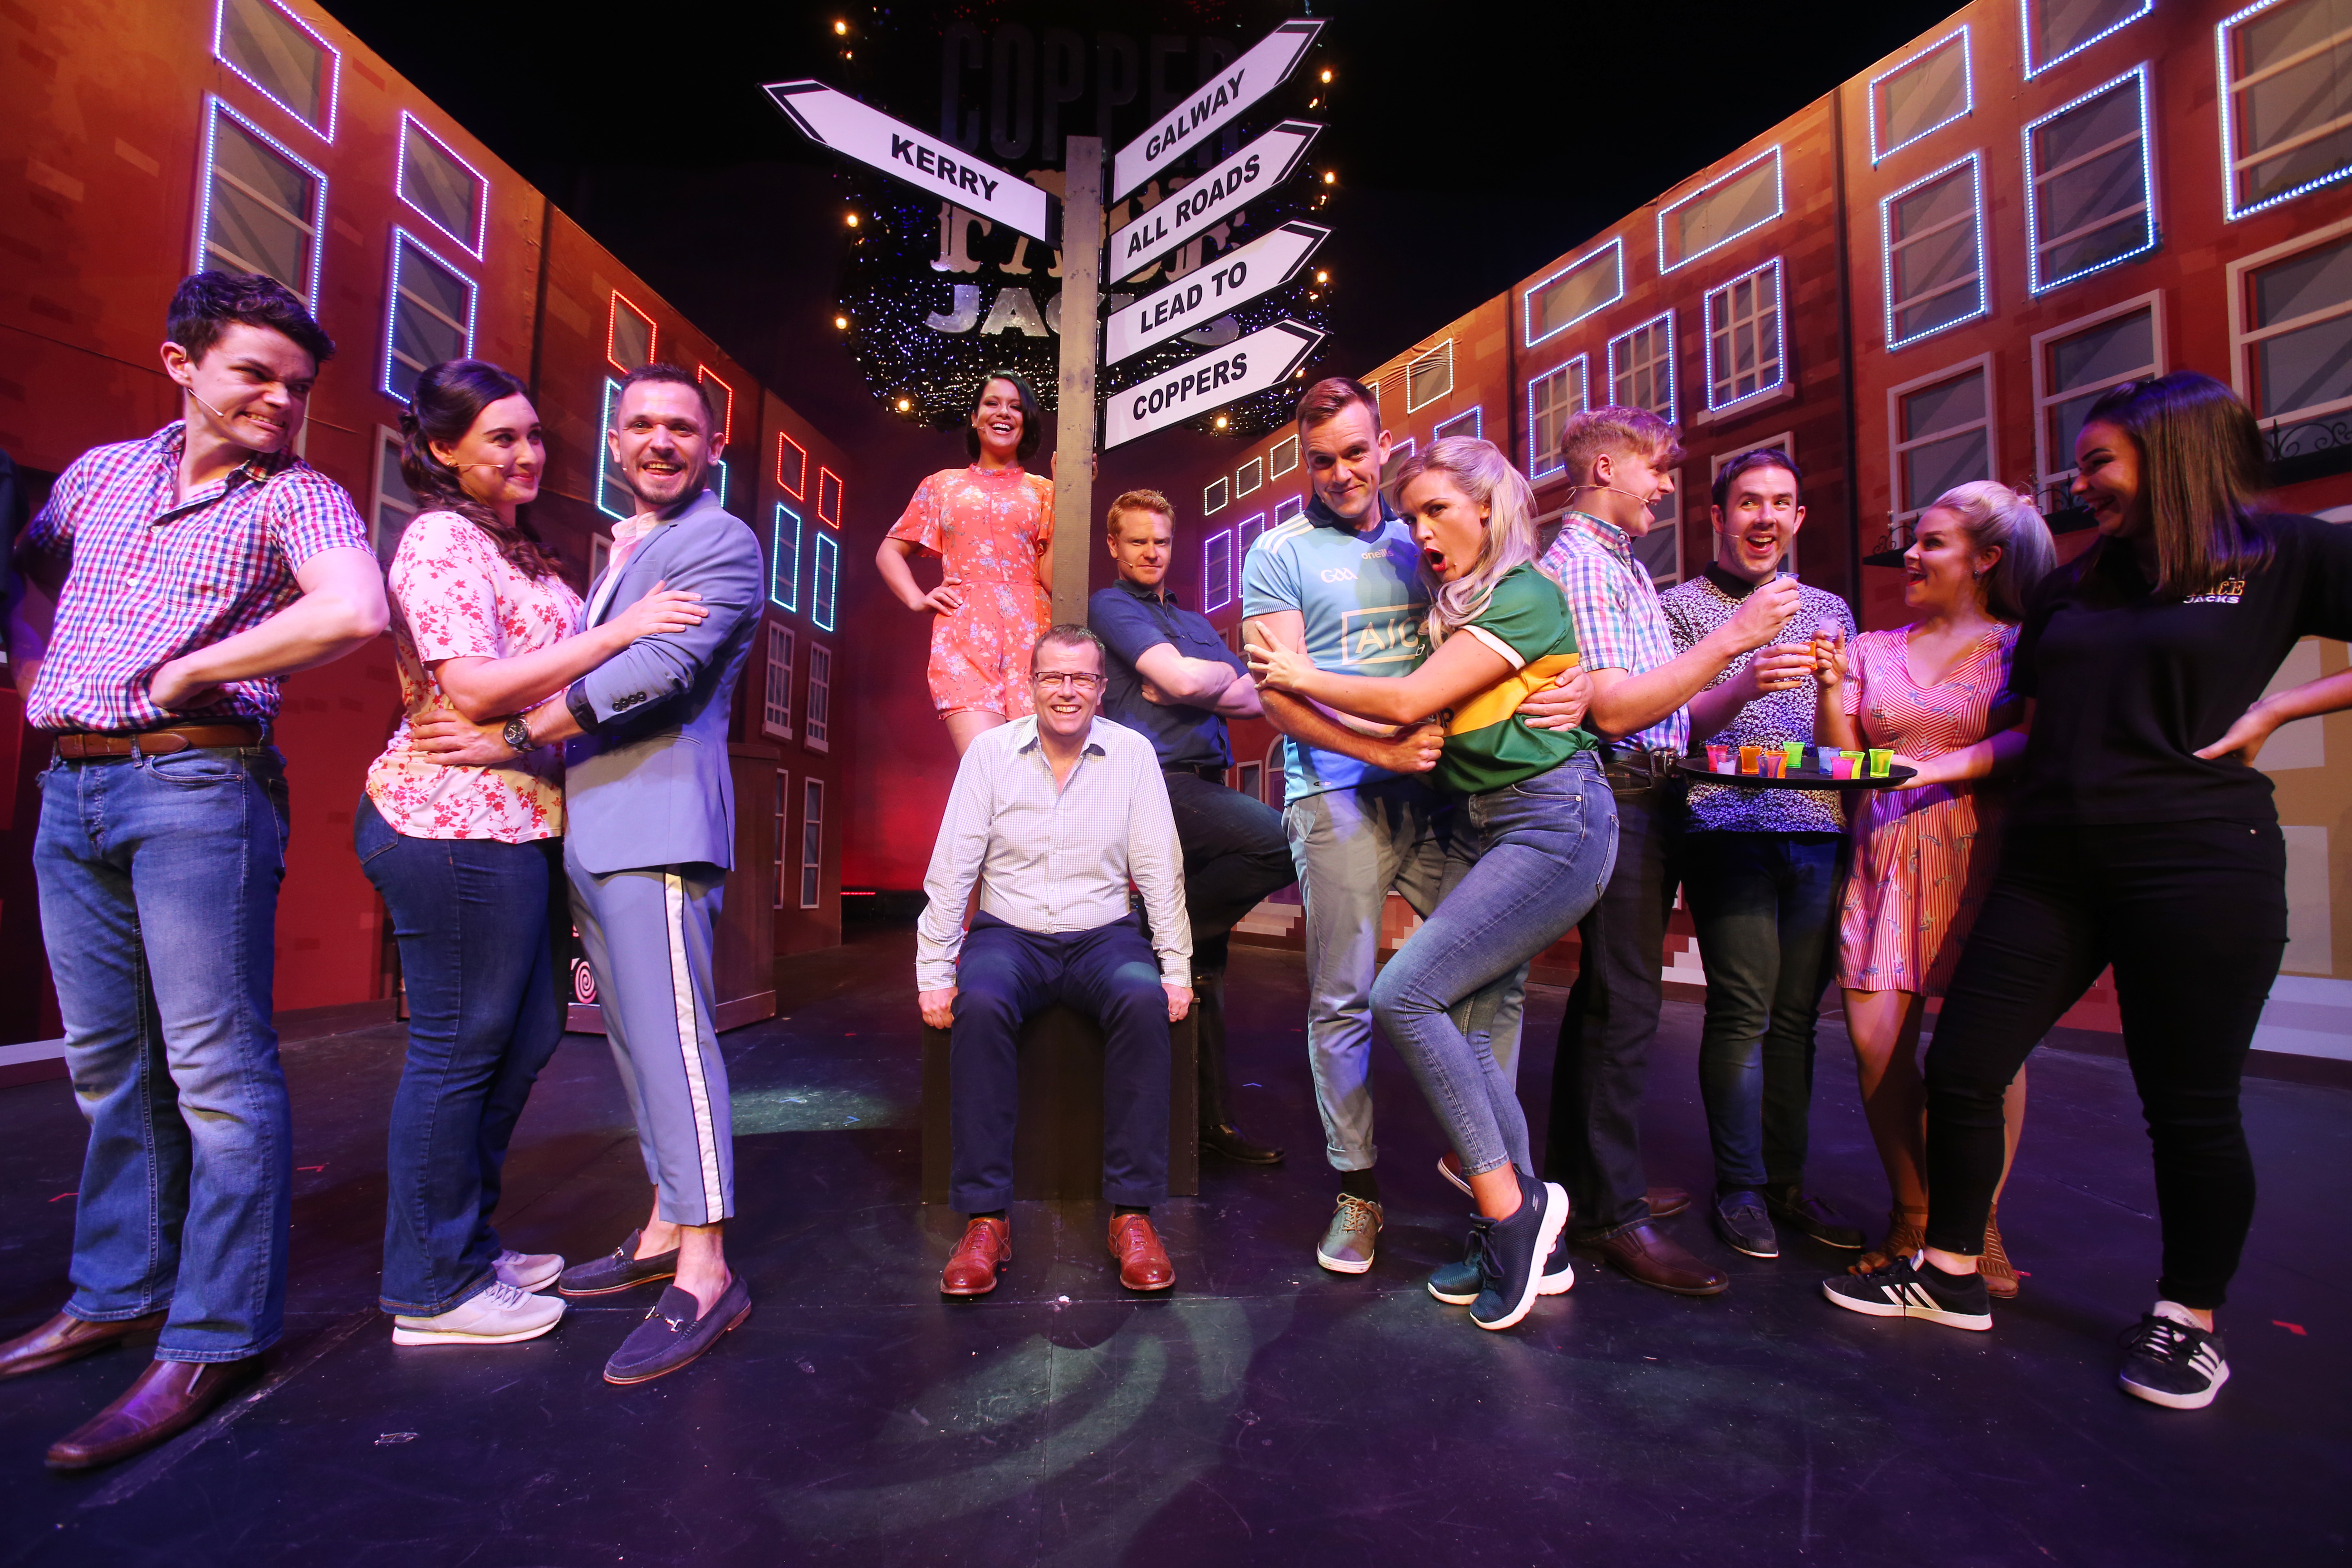 Writer of the Copper Face Jacks The Musical Paul Howard pictured in centre joined  the cast  on stage at the Olympia Theatre. Photo: Leon Farrell/Photocall Ireland.